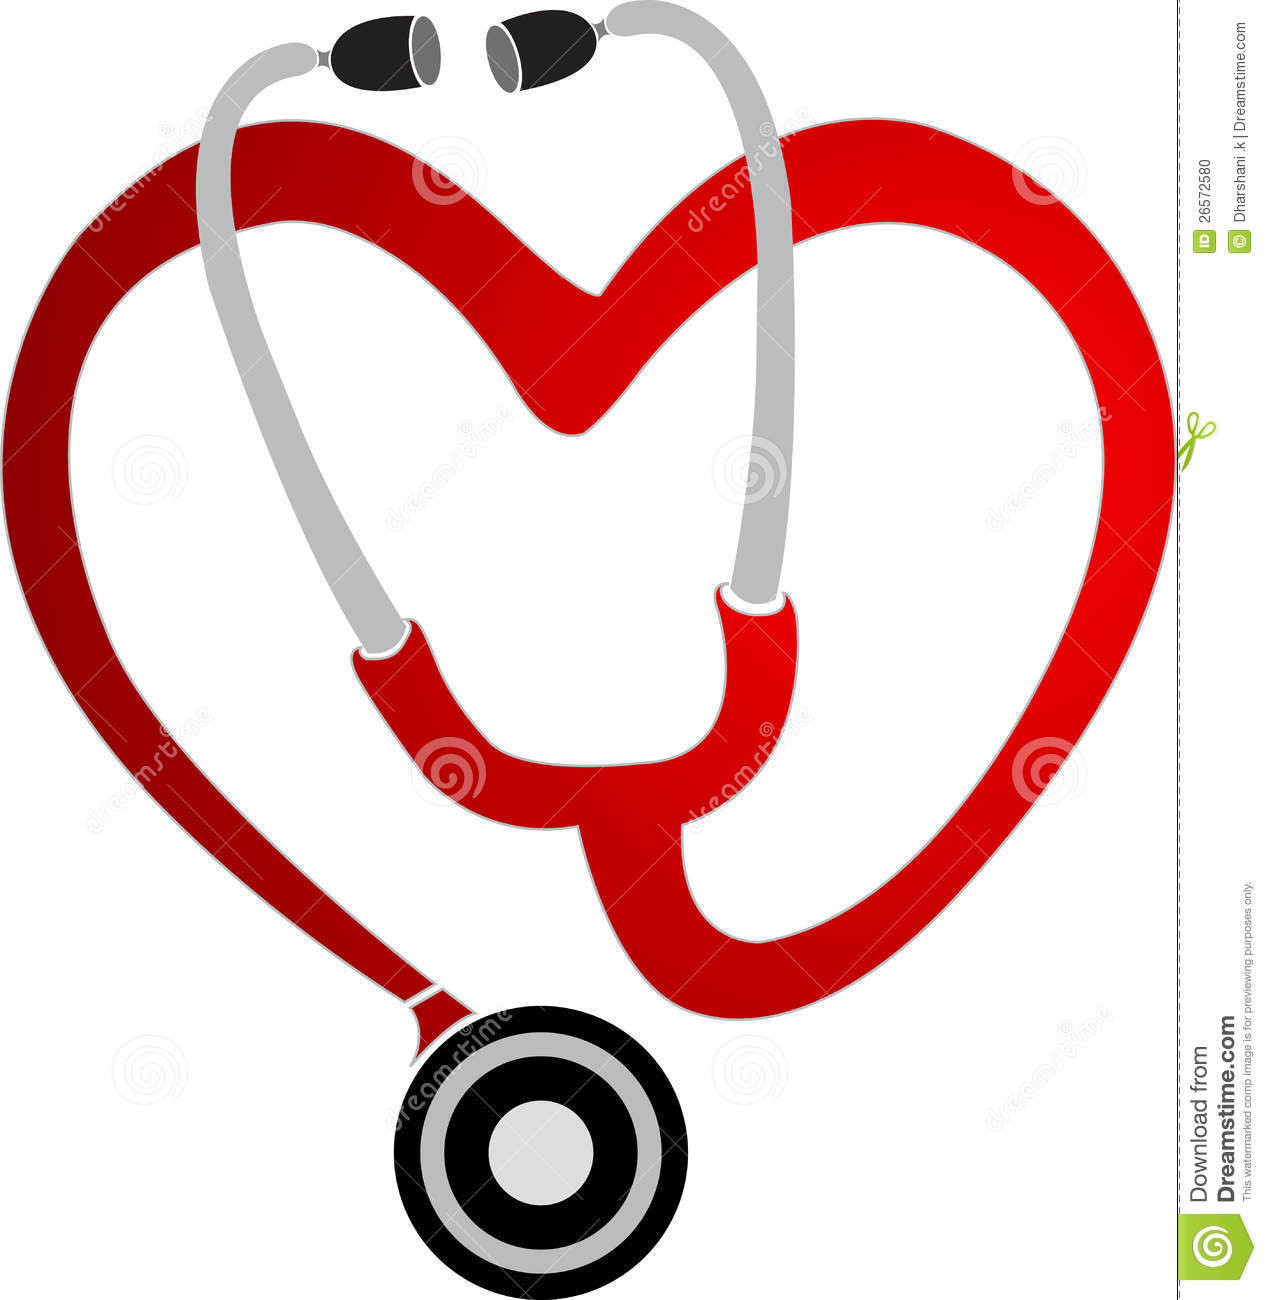 Heart-shaped clipart nurse Clip Images Images For Art